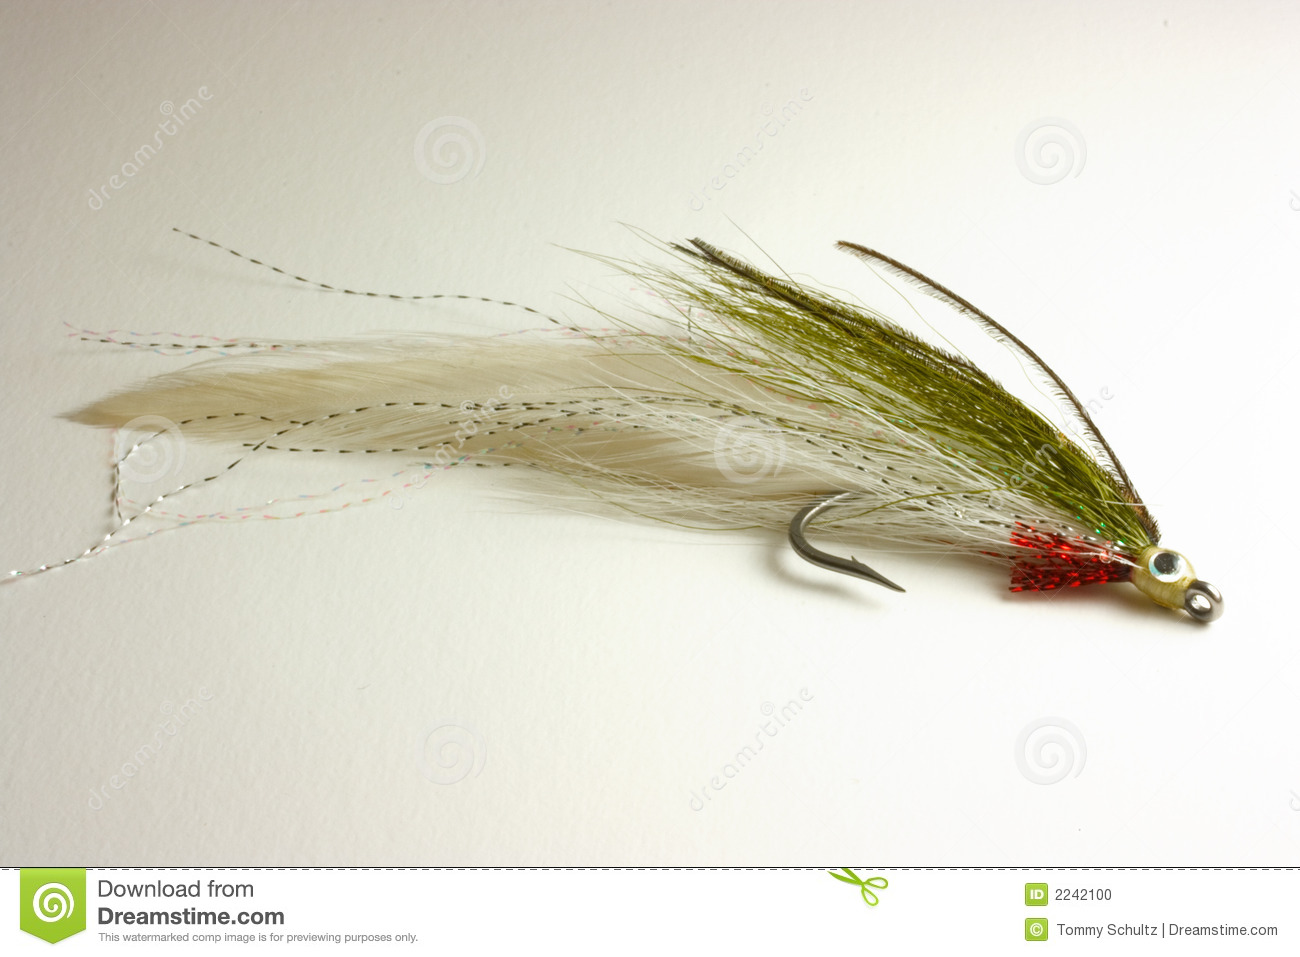 Trout lure for fly fishing stock photo image 2242100 for Fly fishing lures